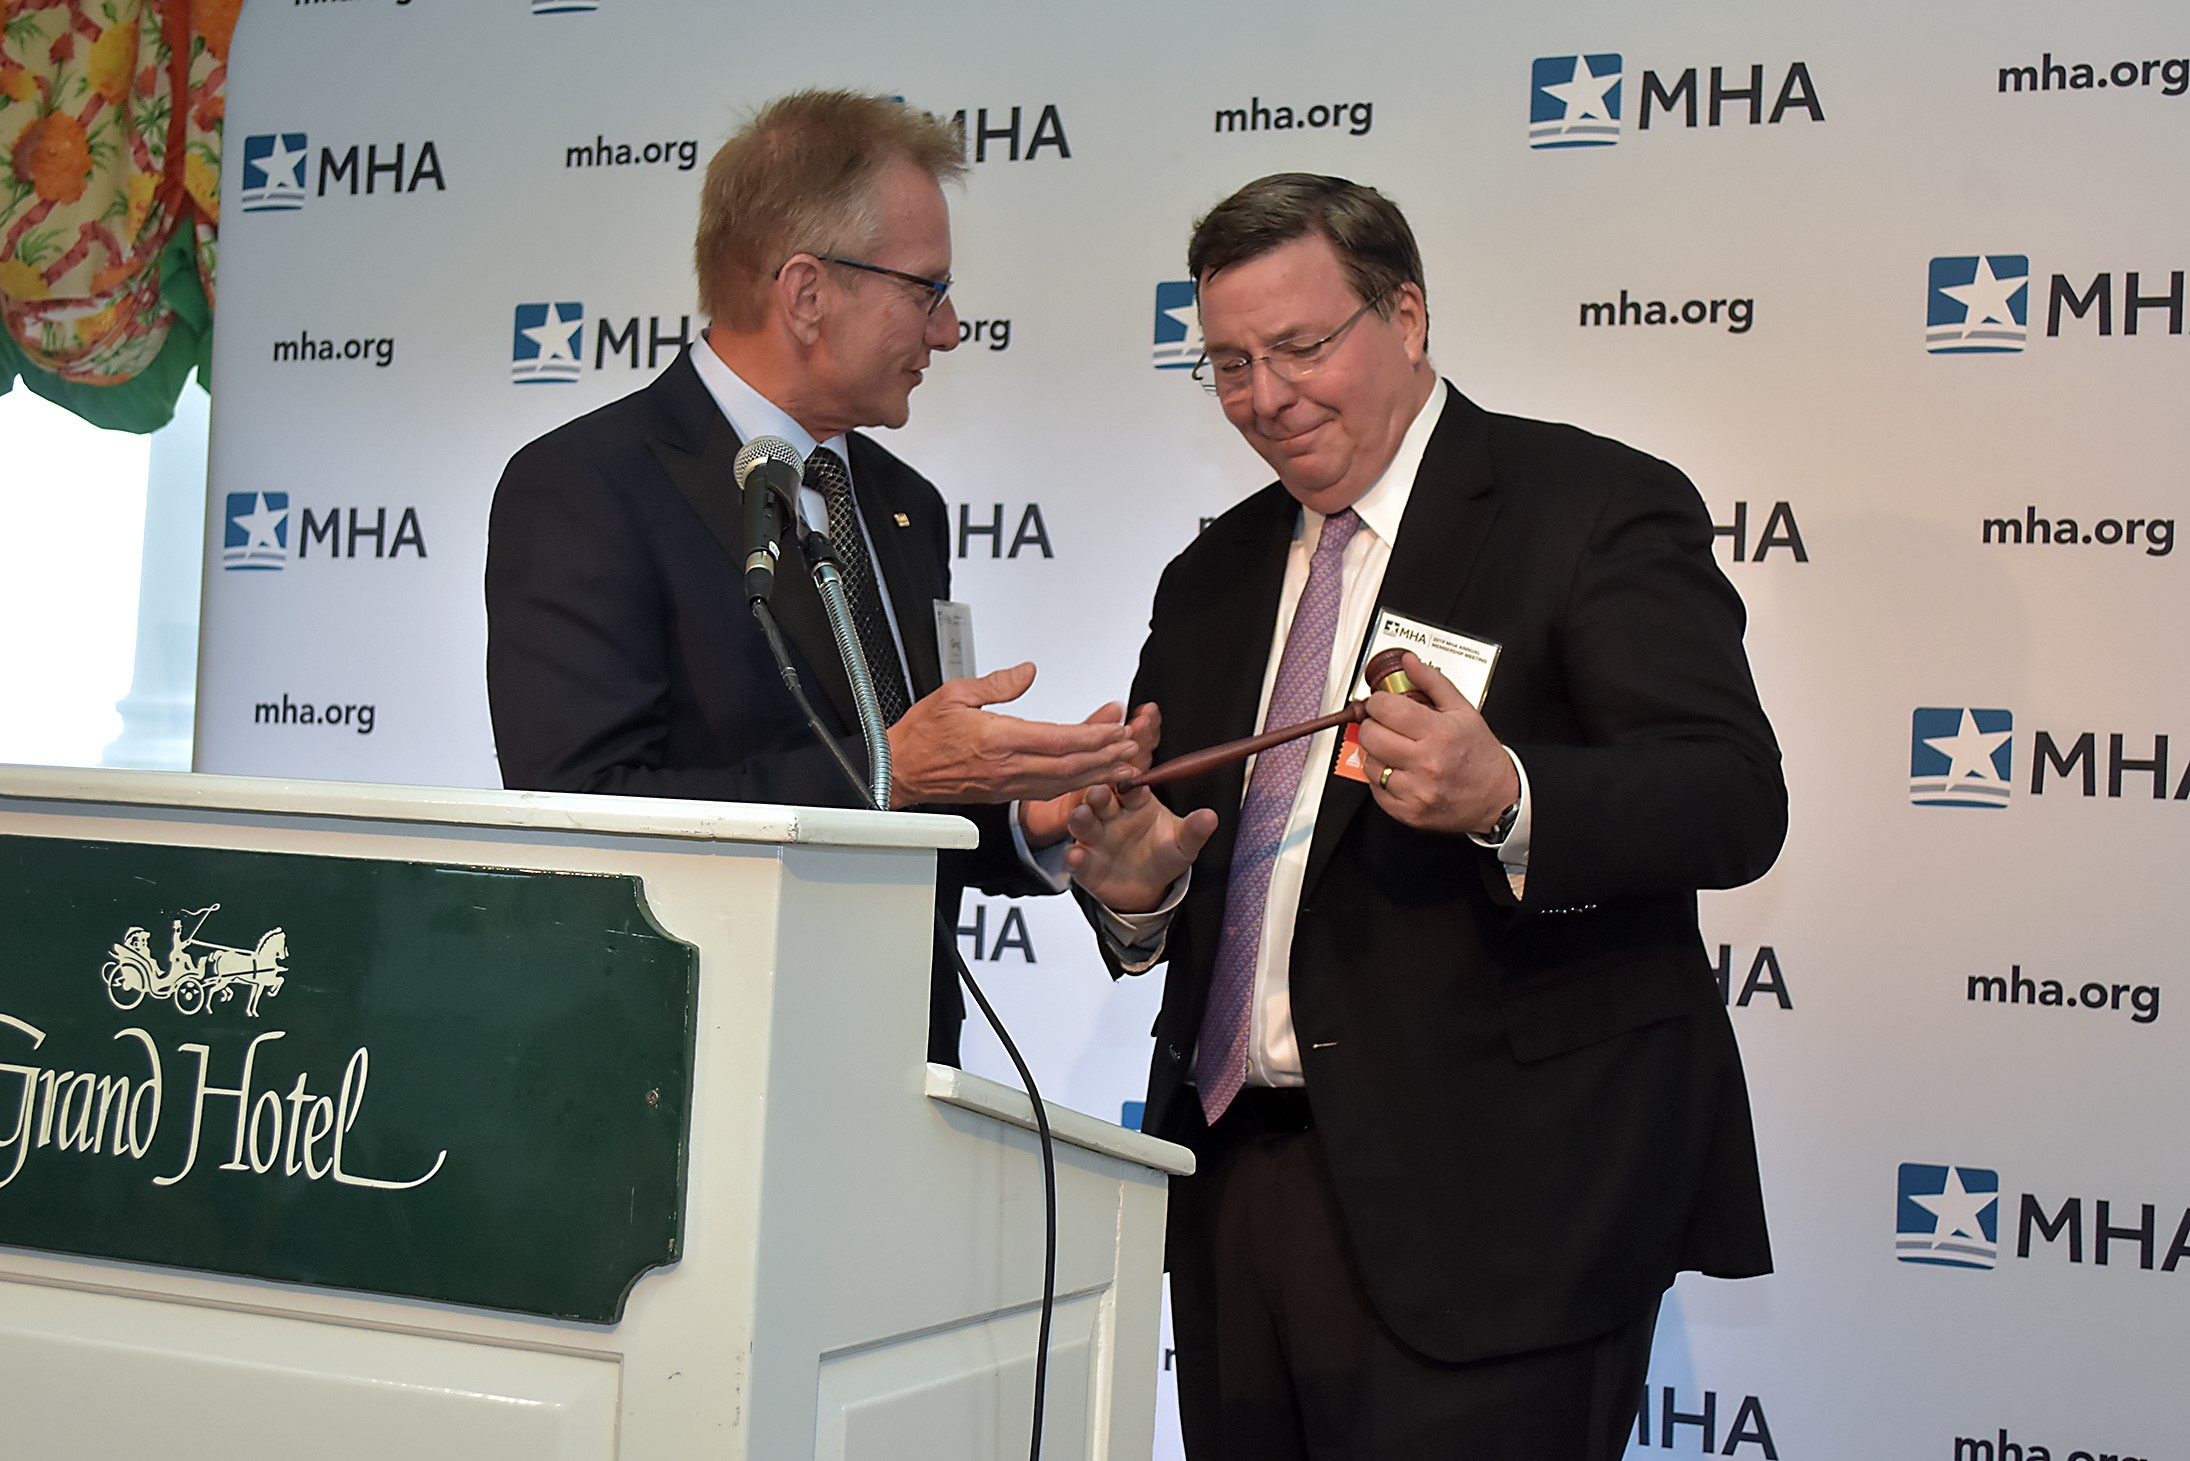 Gregory R. Lane, past chair, presents the gavel to new MHA Board of Trustees chair, John Fox.